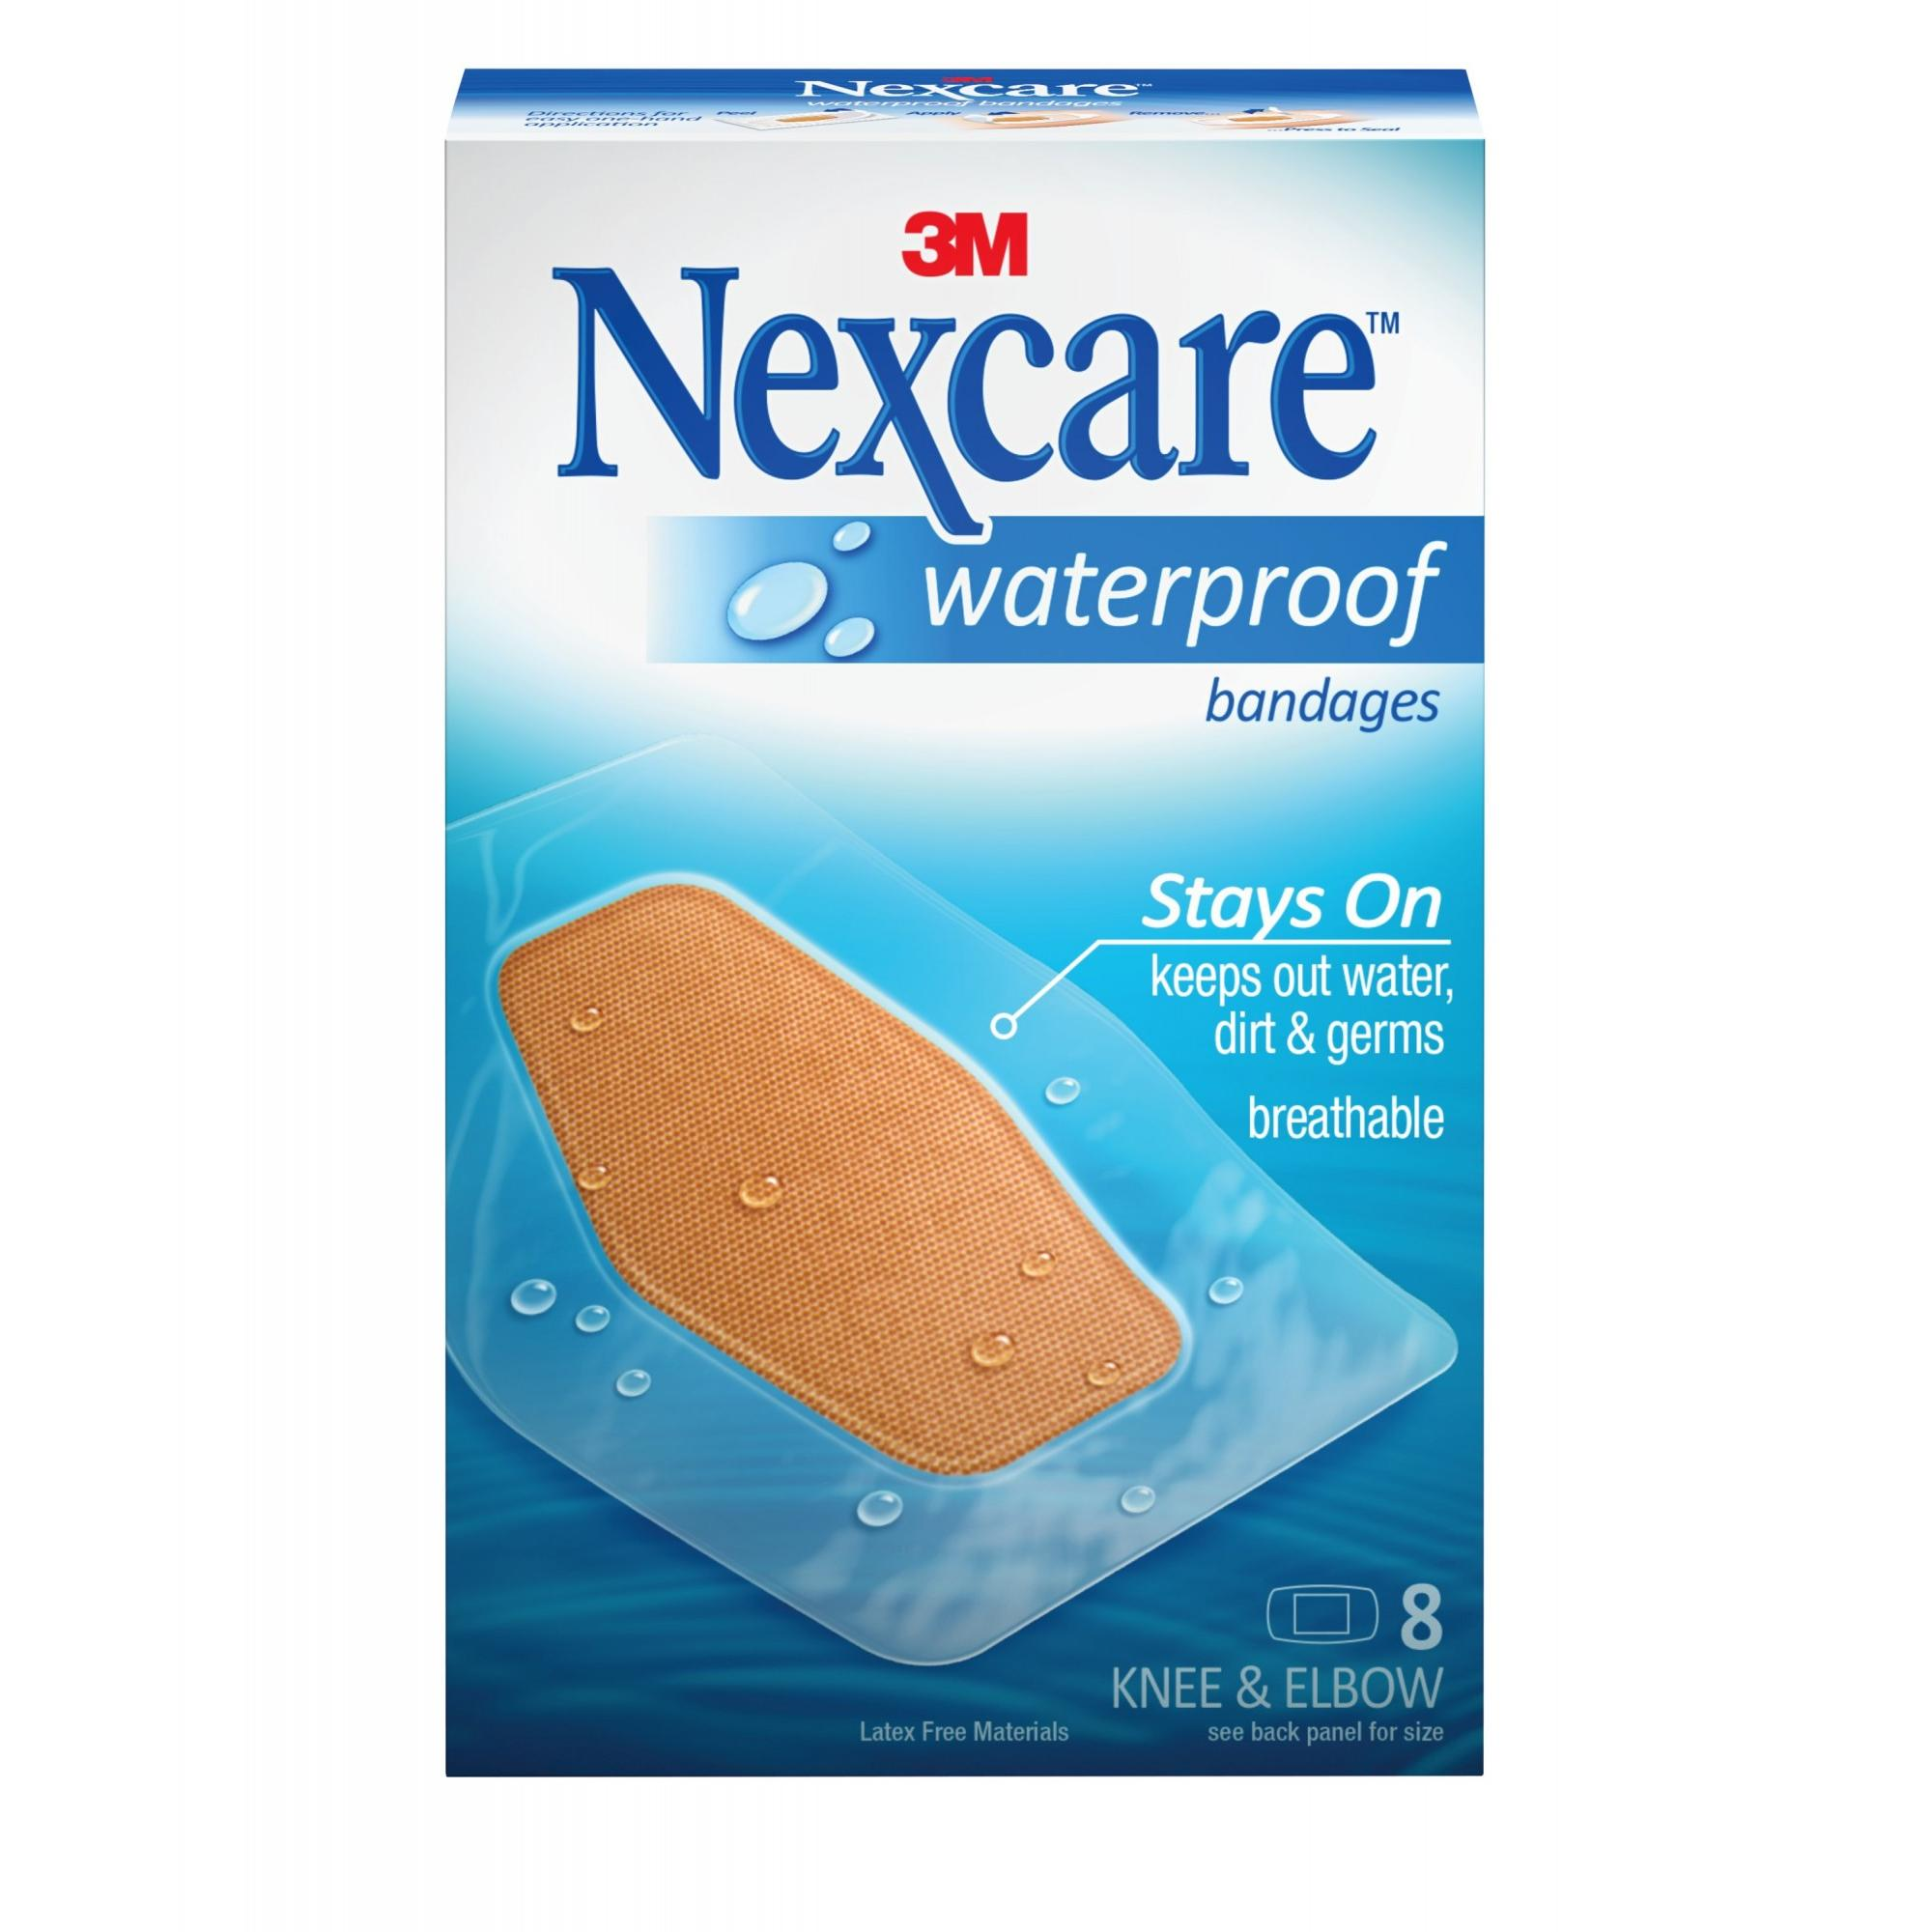 Nexcare Waterproof Bandages, Knee and Elbow, 8 ct.